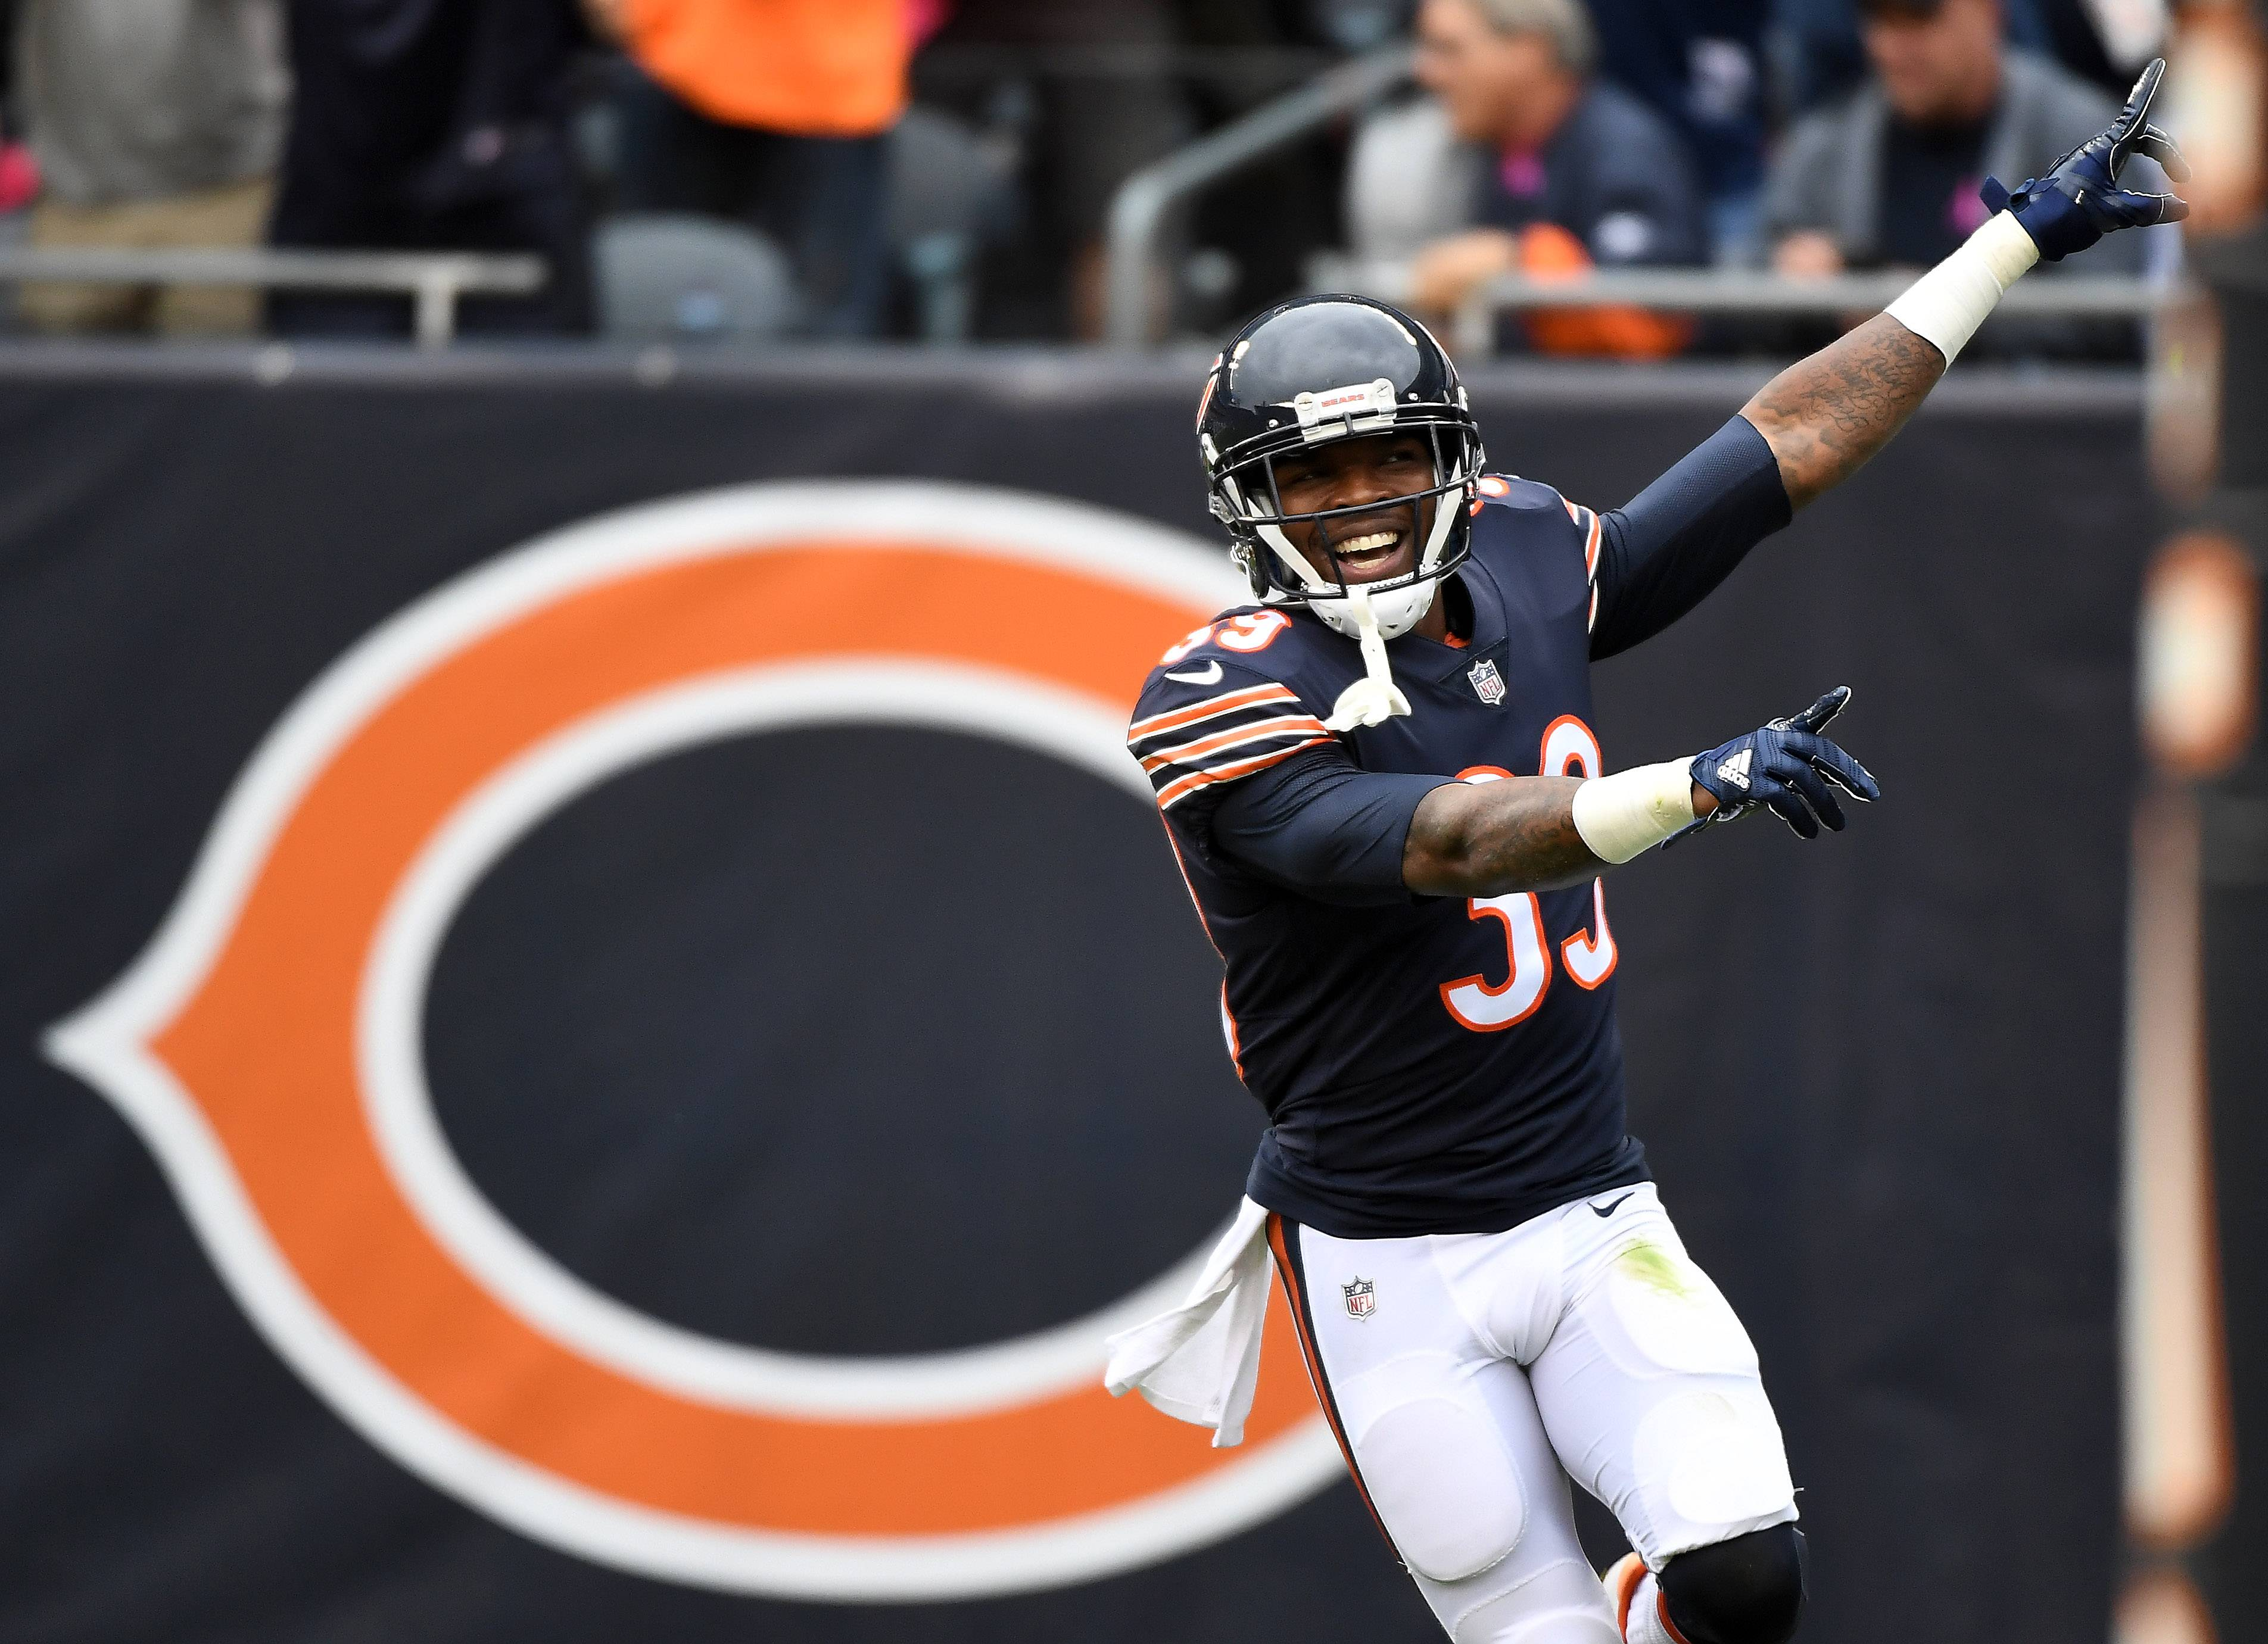 Chicago Bears free safety Eddie Jackson (39) celebrates his first touchdown on a fumble recovery against the Carolina Panthers during Sunday's game at Soldier Field in Chicago.